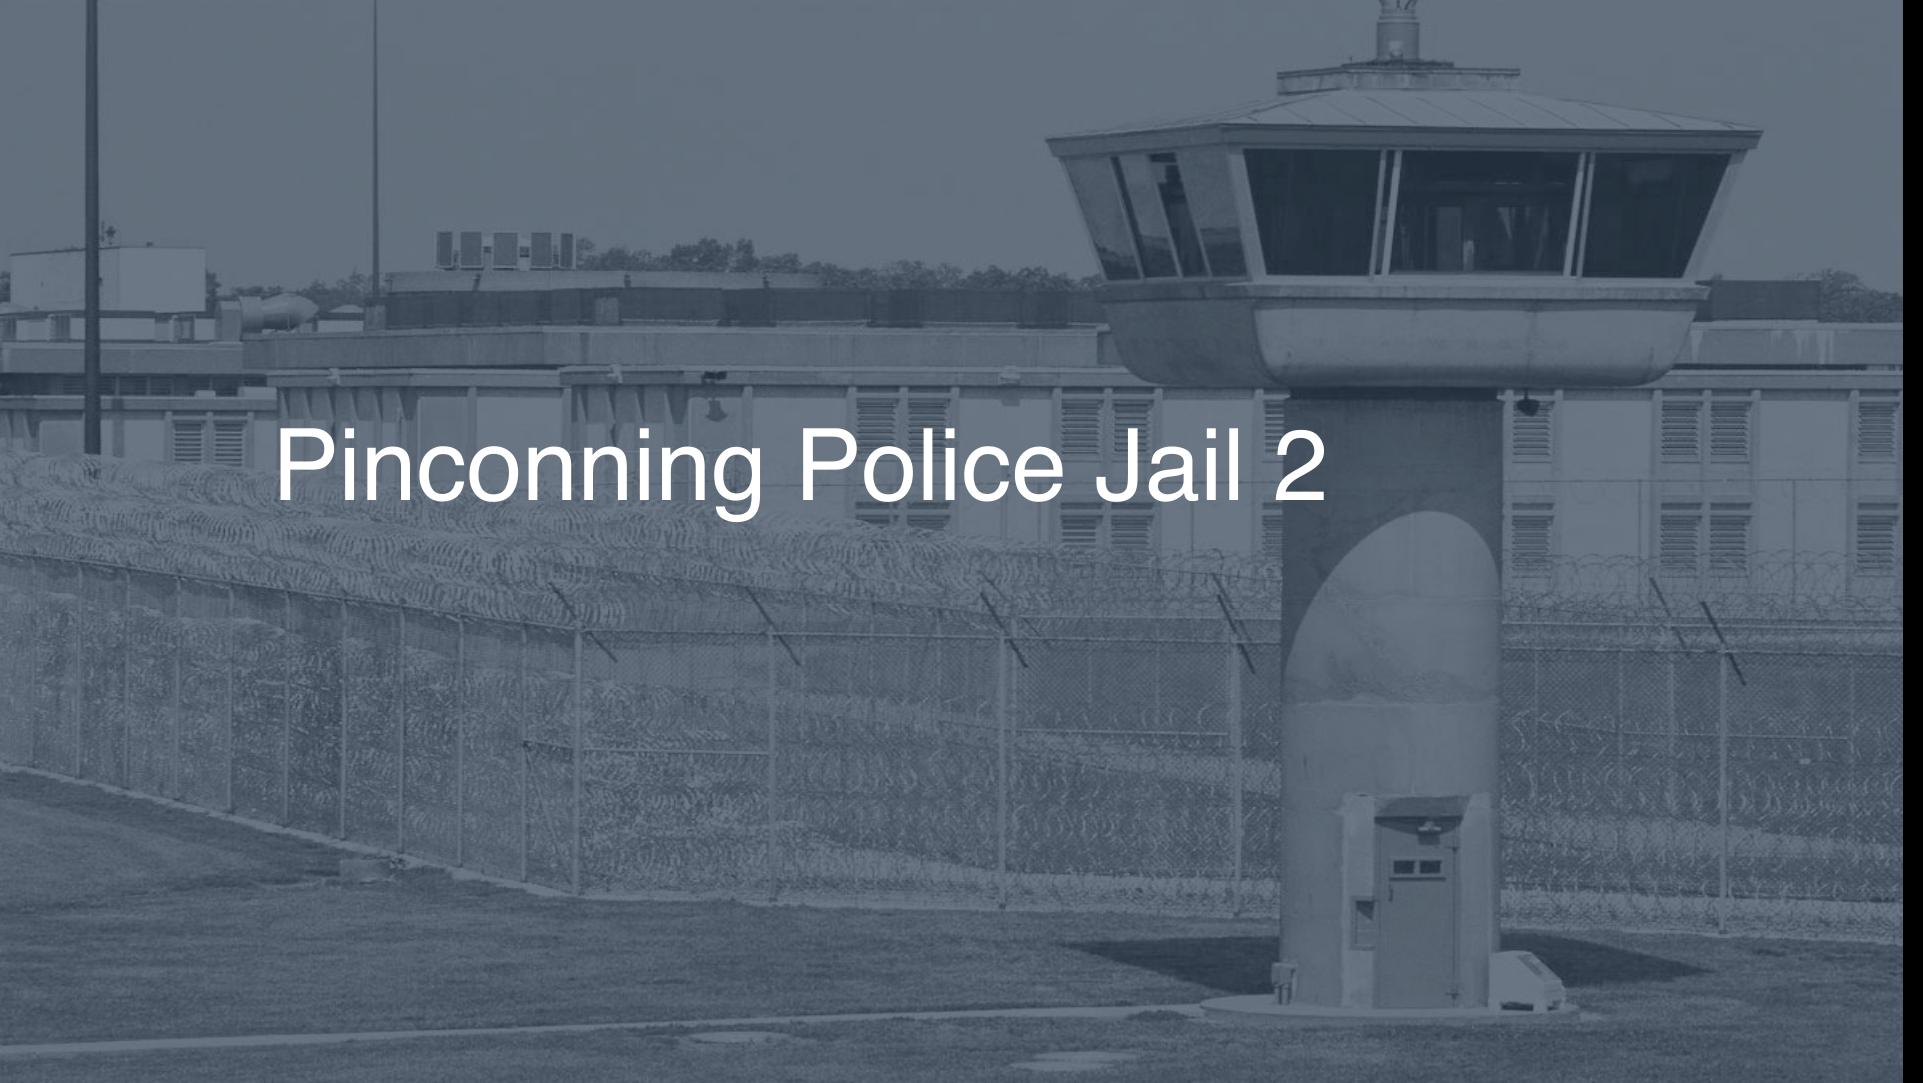 Pinconning Police Jail correctional facility picture